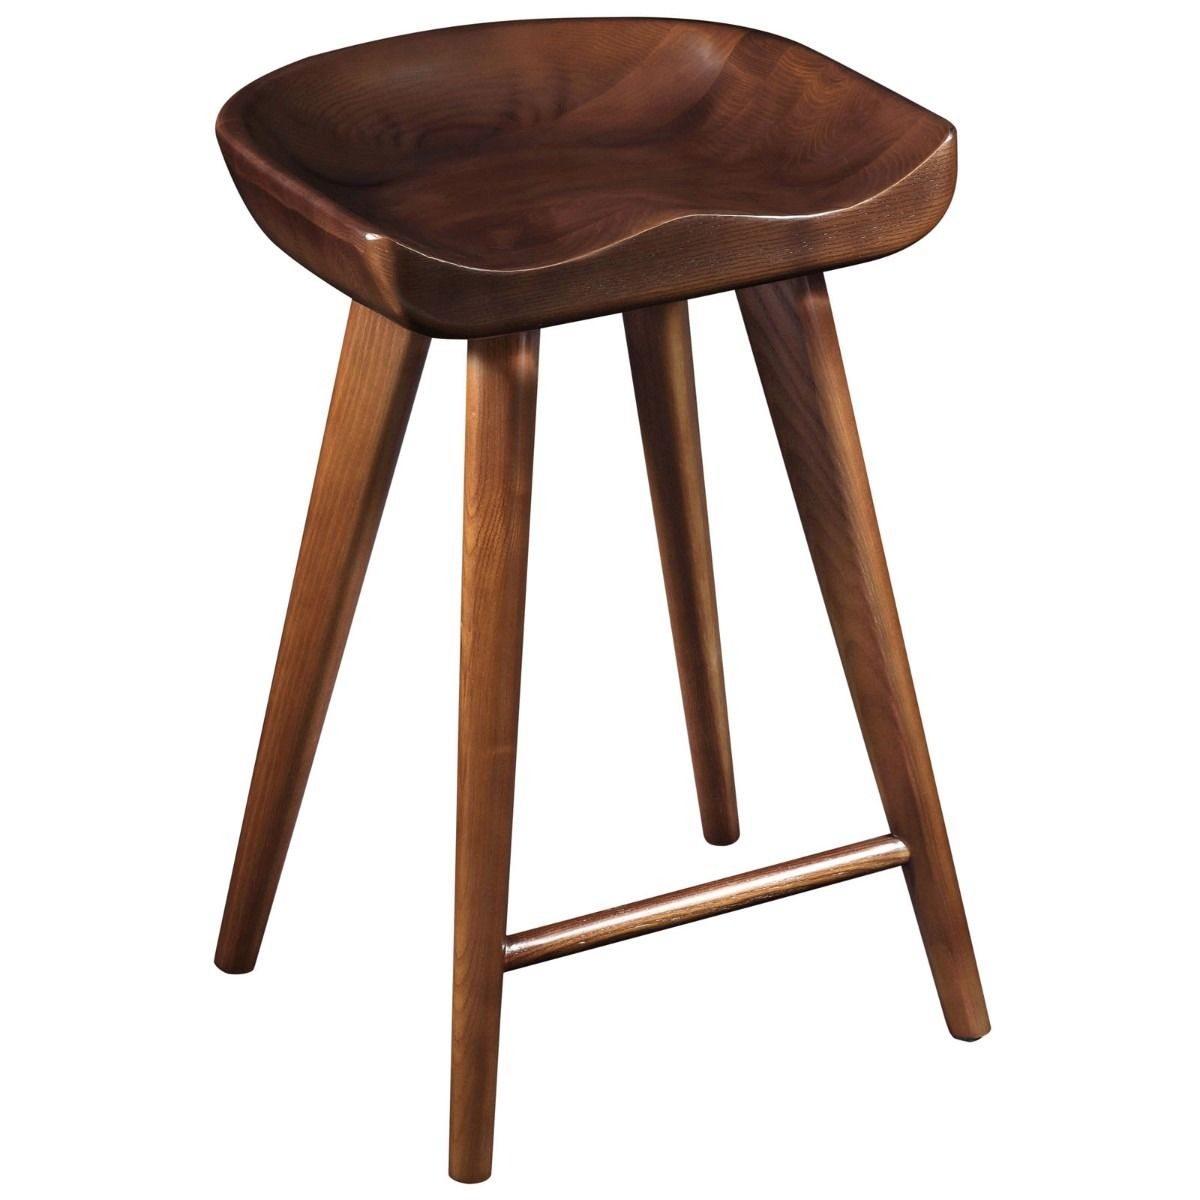 Banco para bar stool de madera solida de nogal for Bancos de madera para barra